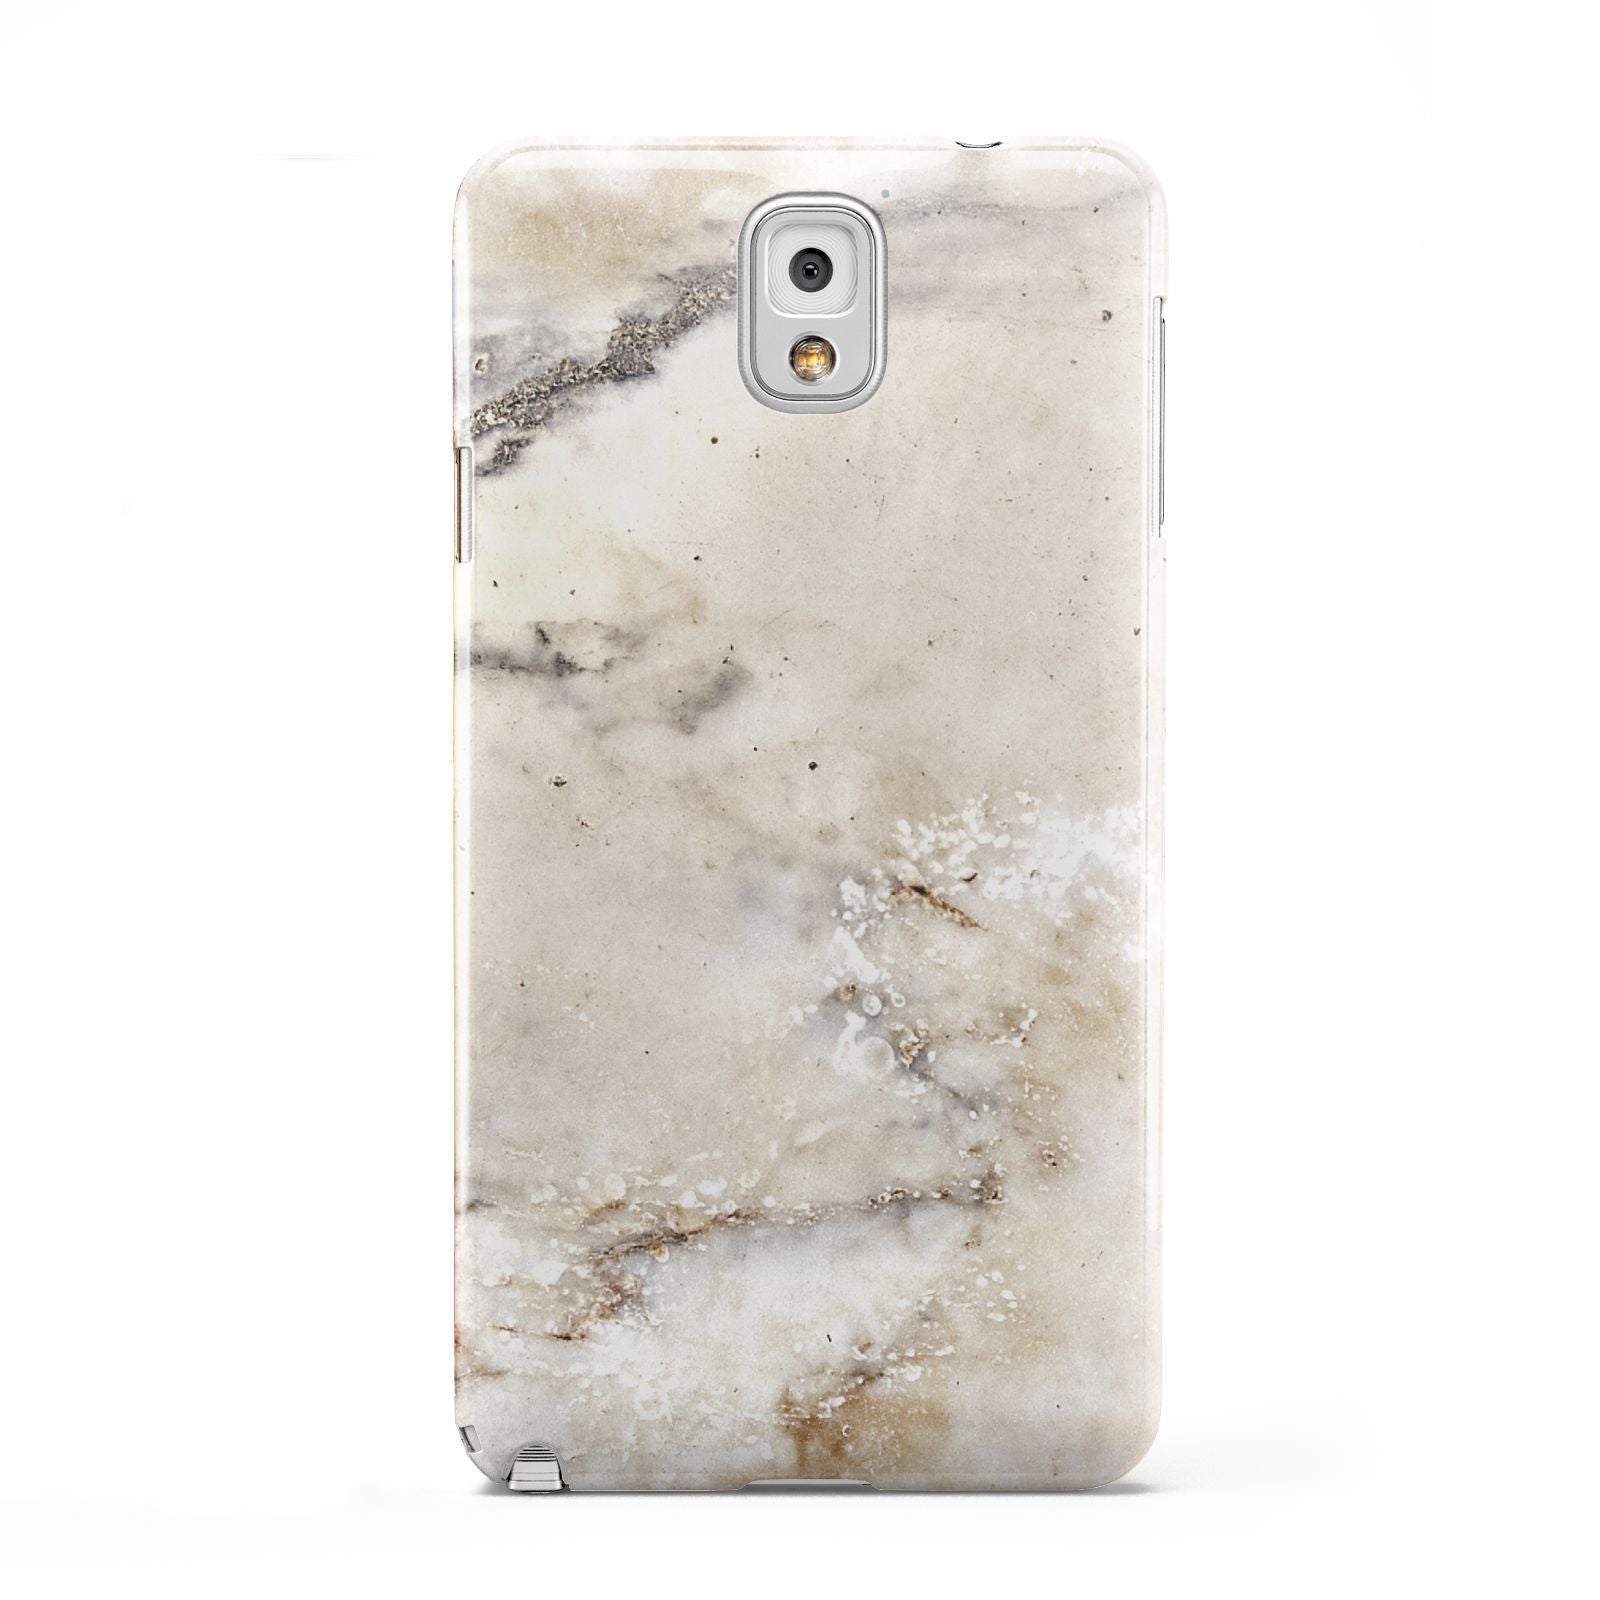 Faux Marble Effect Print Samsung Galaxy Note 3 Case